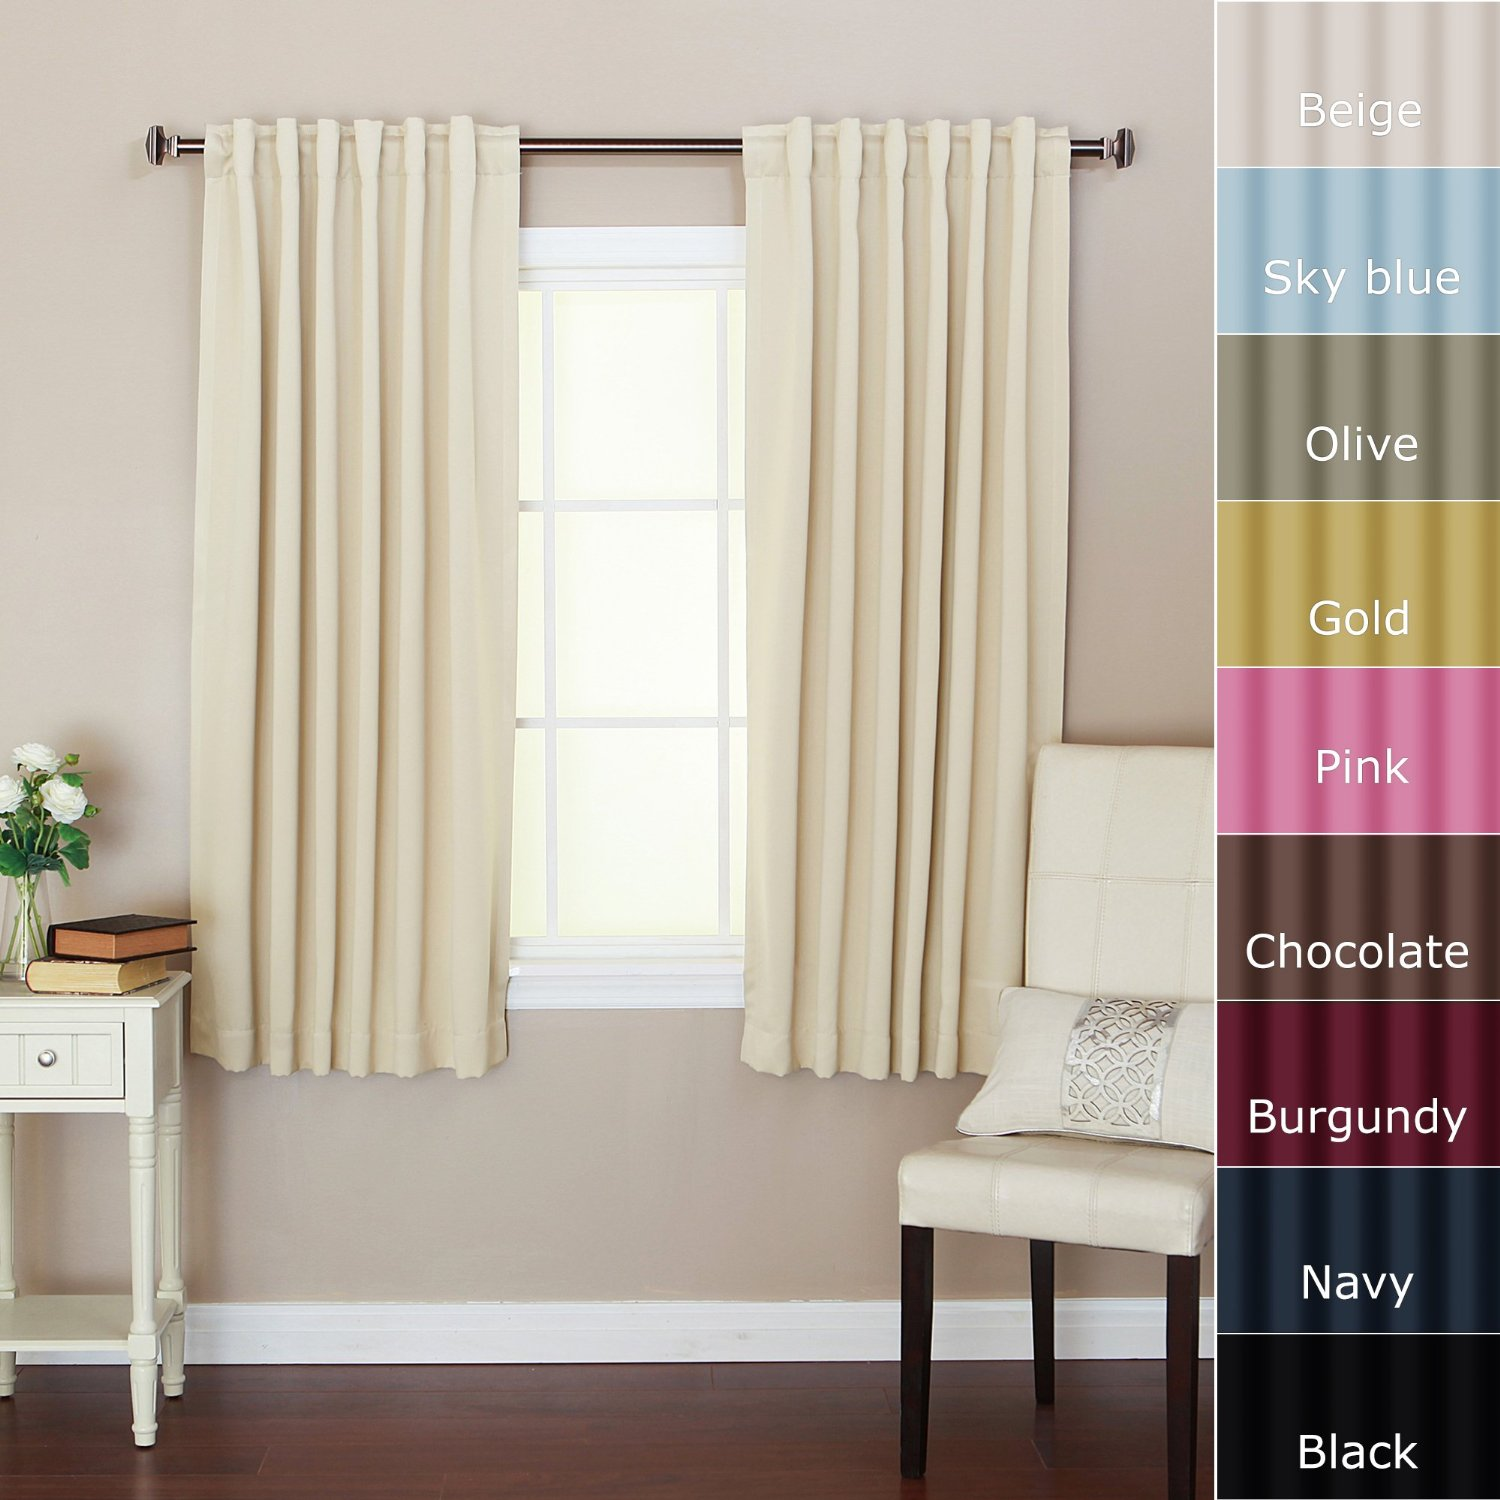 Cheap Blackout Curtains for Inspiring Home Decorating Ideas: Blackout Curtains Cheap | Curtains Blockout | Cheap Blackout Curtains